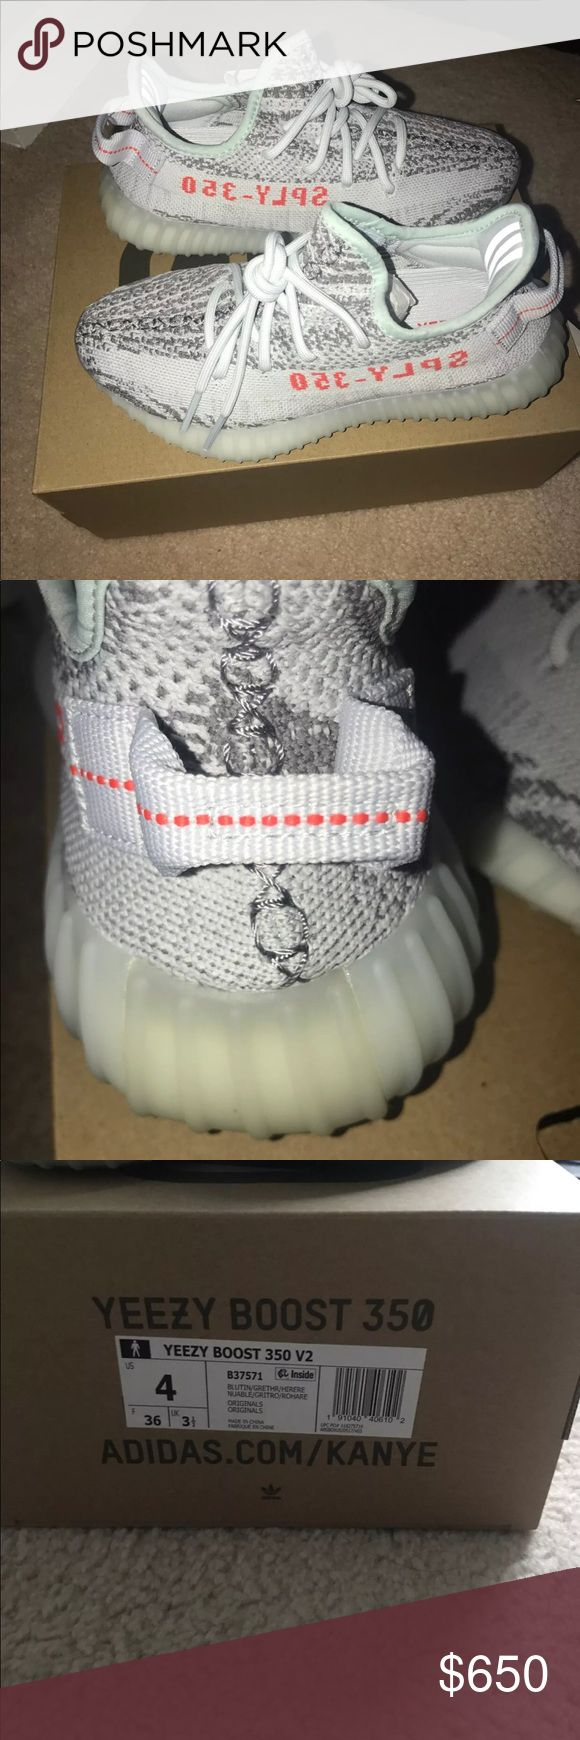 Yeezys by Kanye West Brand new blue tints by Kanye West  Beautiful shoes  Let me know if you guys want additional photos.  Price will be above 500 so you guys can get free authentication so you know ur money isn't going to waste. I do have sizes 4,5,6.5 and 9. Let me know if you want me to post pic for those as well Yeezy Shoes Sneakers